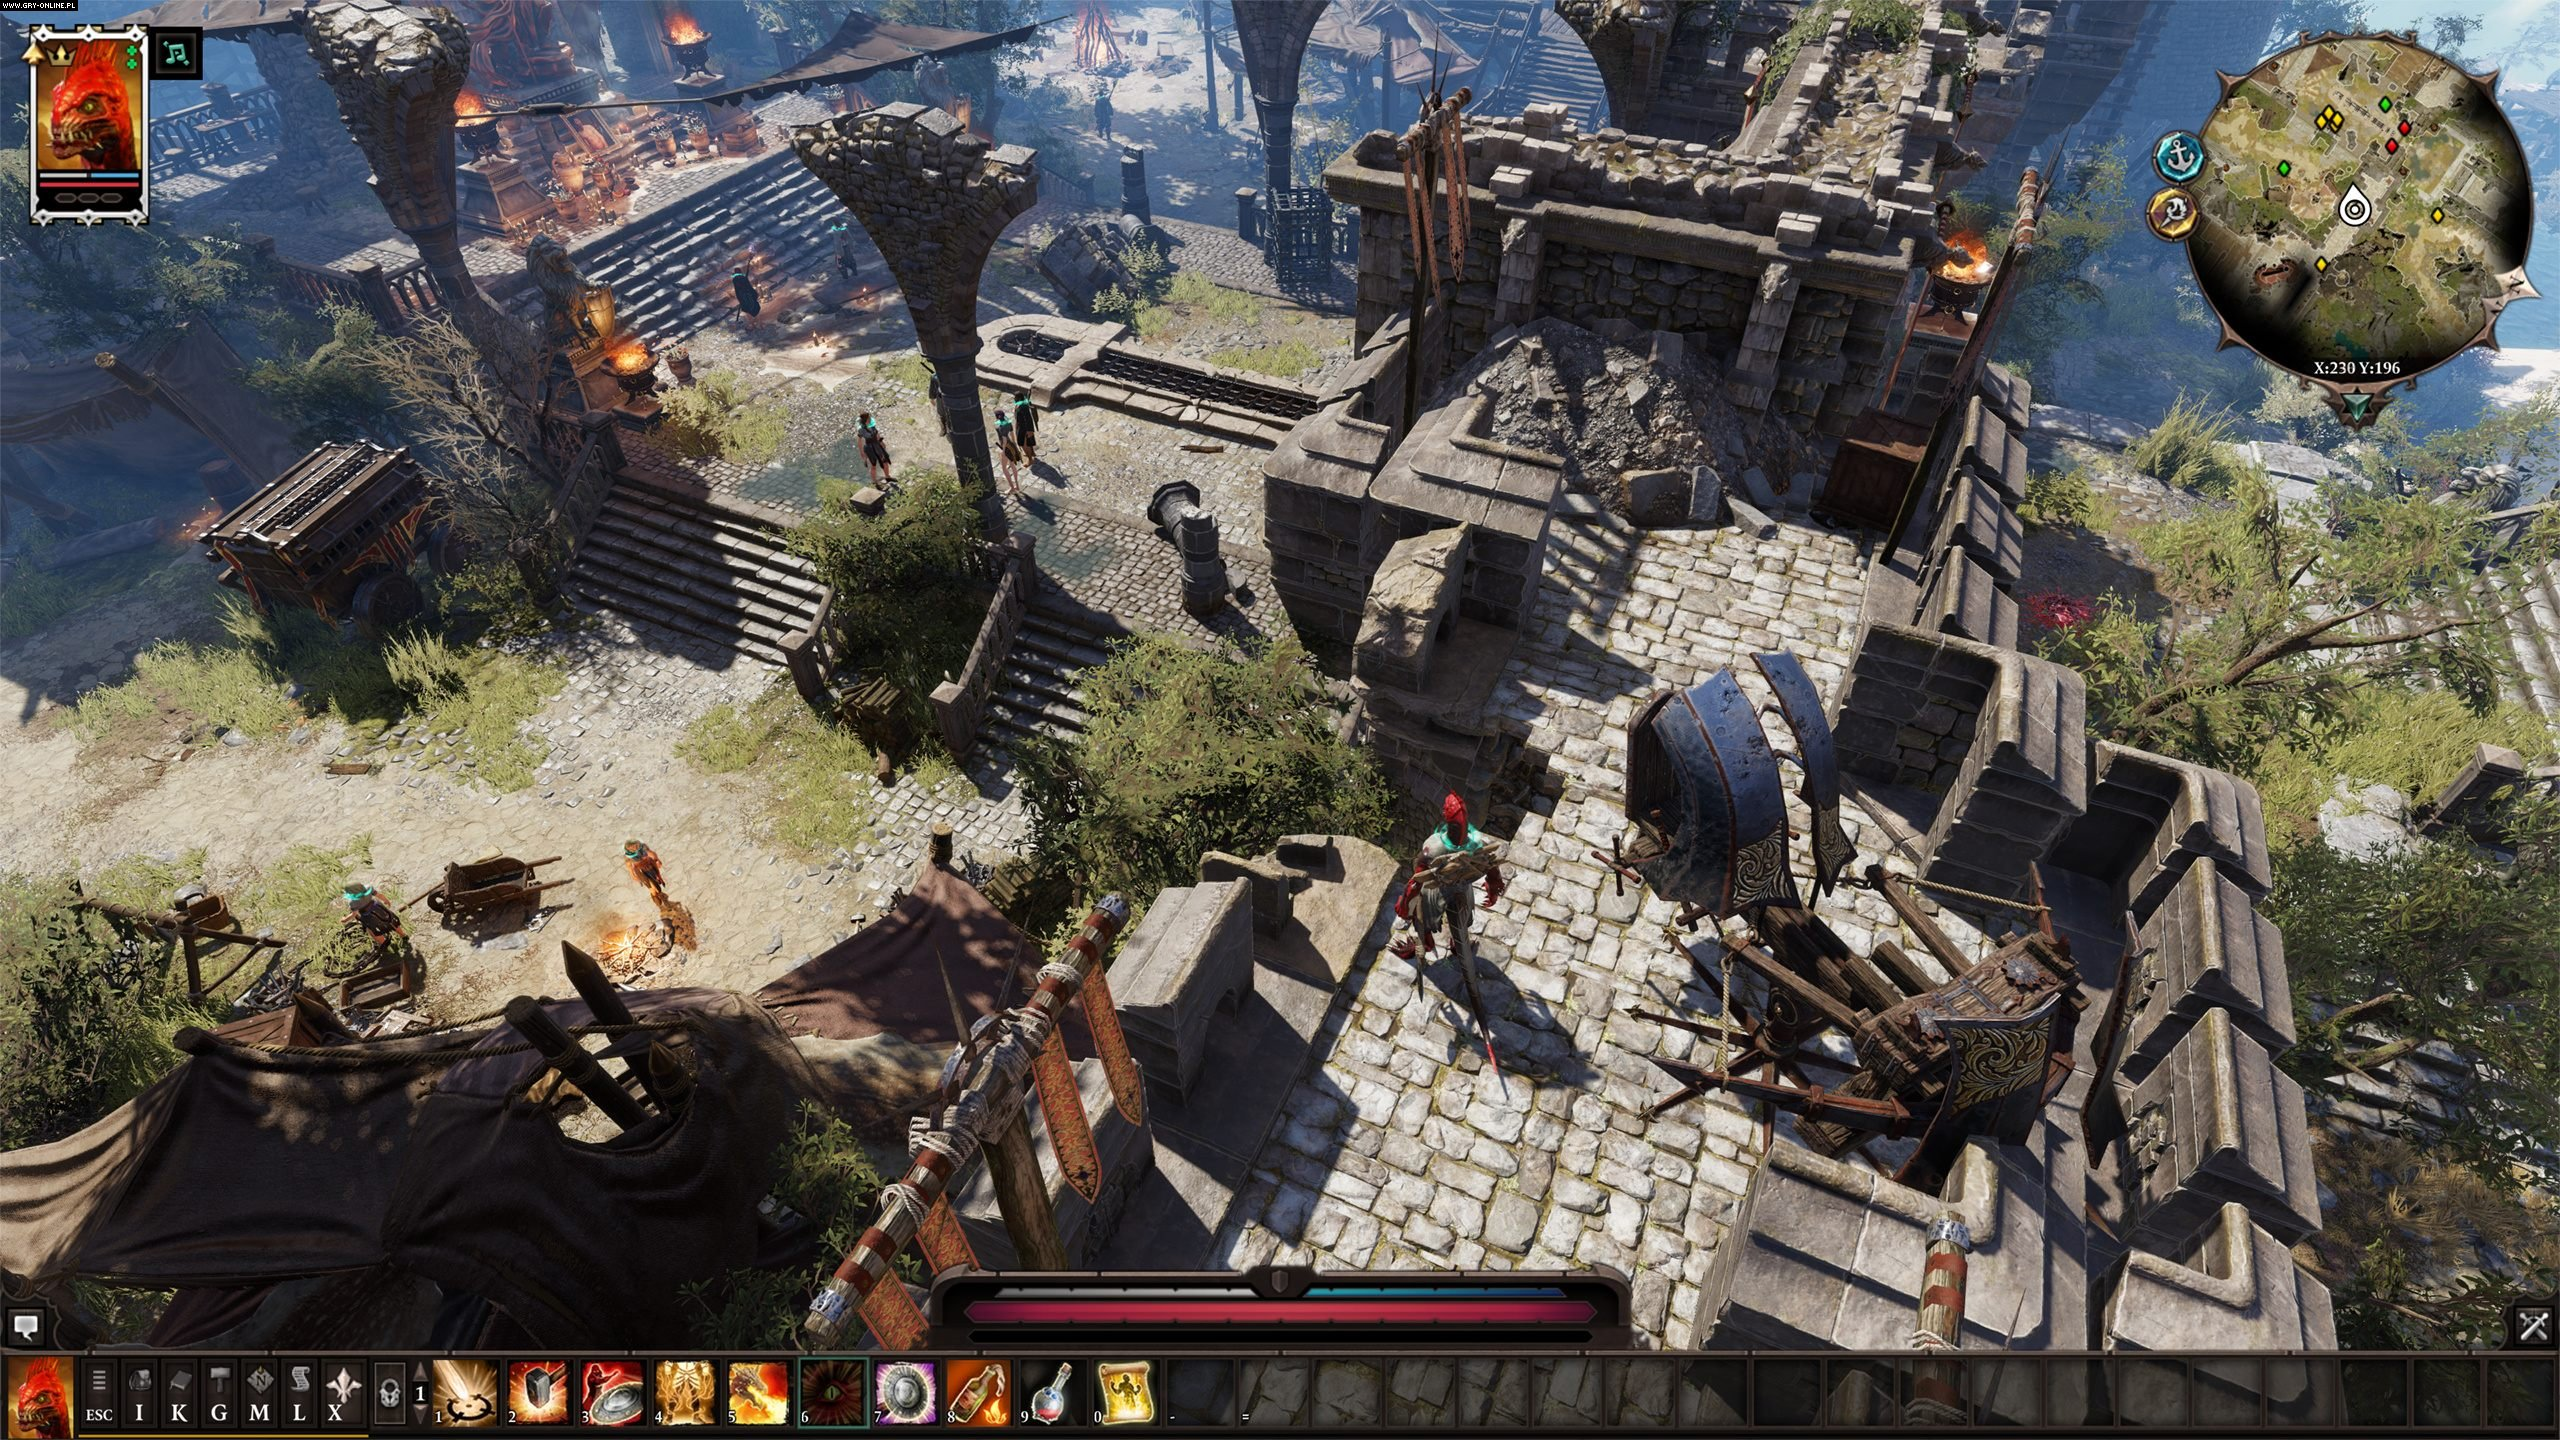 Divinity: Original Sin II - Definitive Edition PC Games Image 40/299, Larian Studios